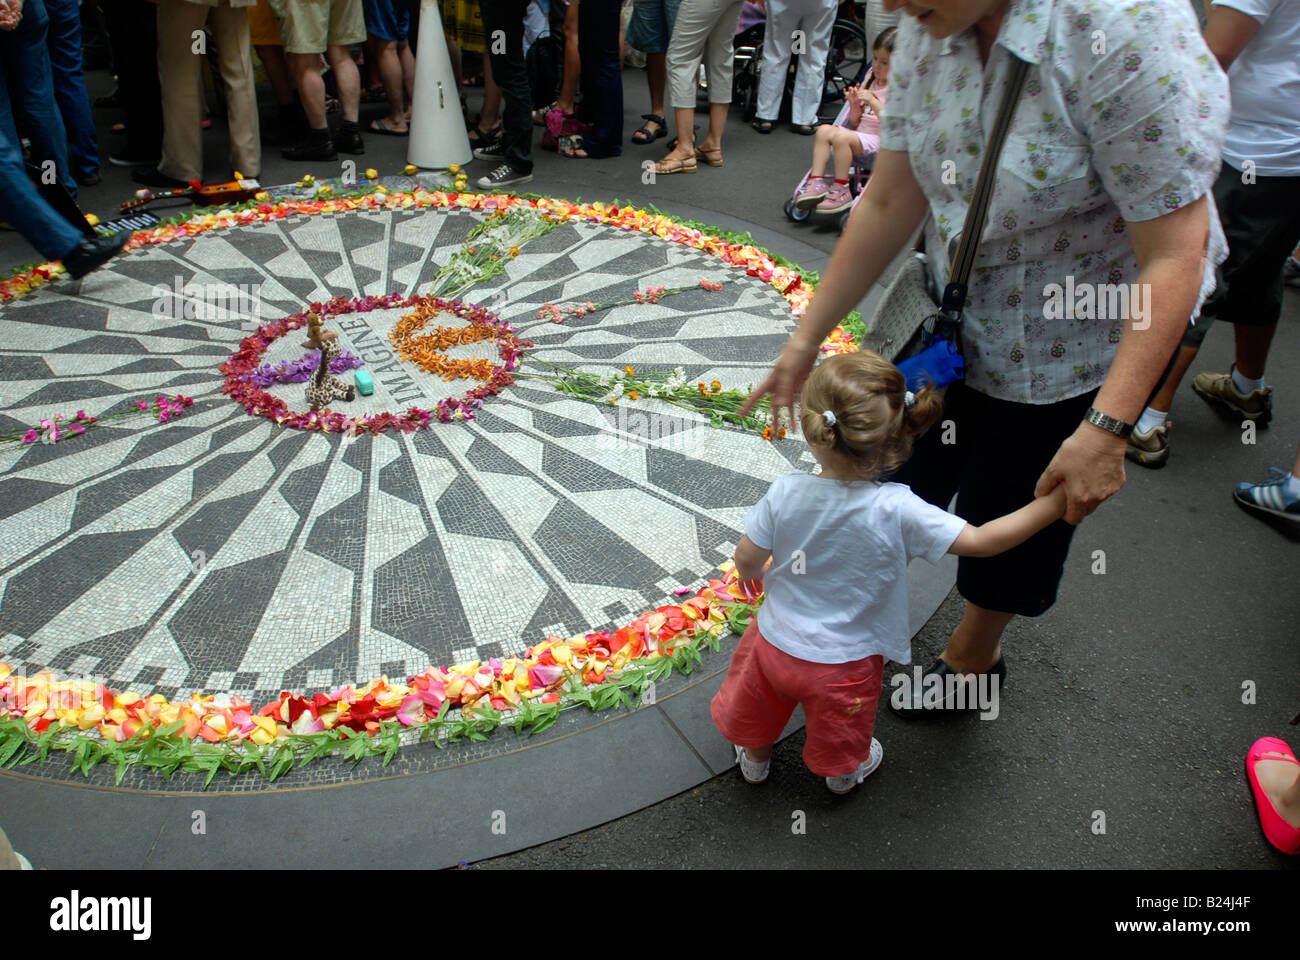 Visitors to the Imagine mosaic in Strawberry Fields memorializing John Lennon in Central Park in New York - Stock Image